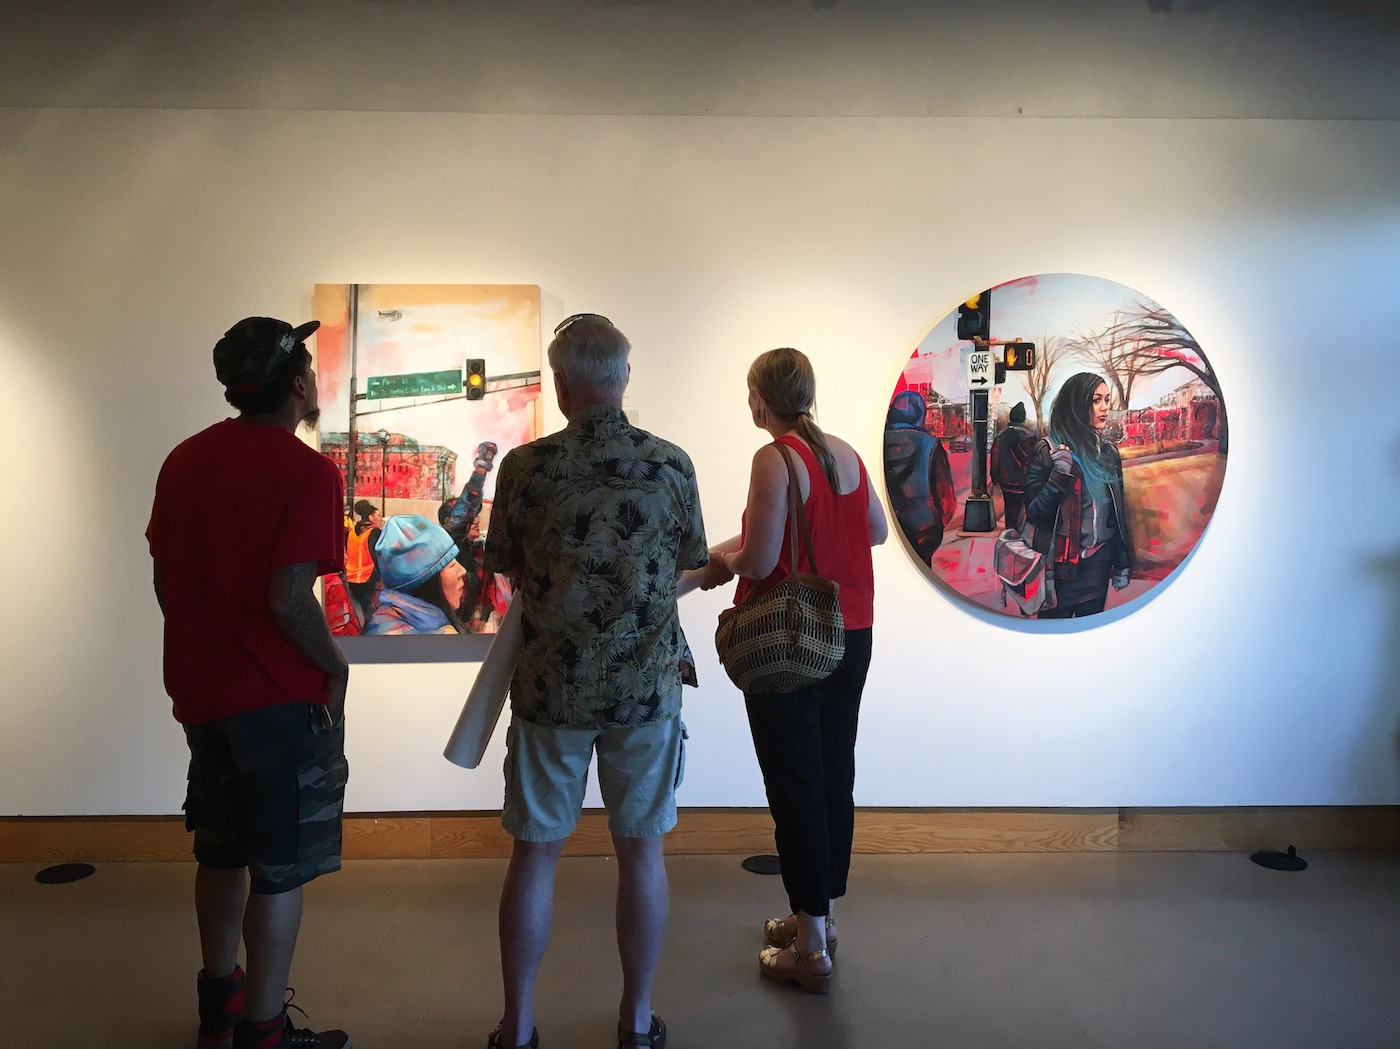 Installation view of 'Reframe Minnesota' at All My Relations Arts, featuring paintings by Leslie Barlow (photos by and courtesy the artist)